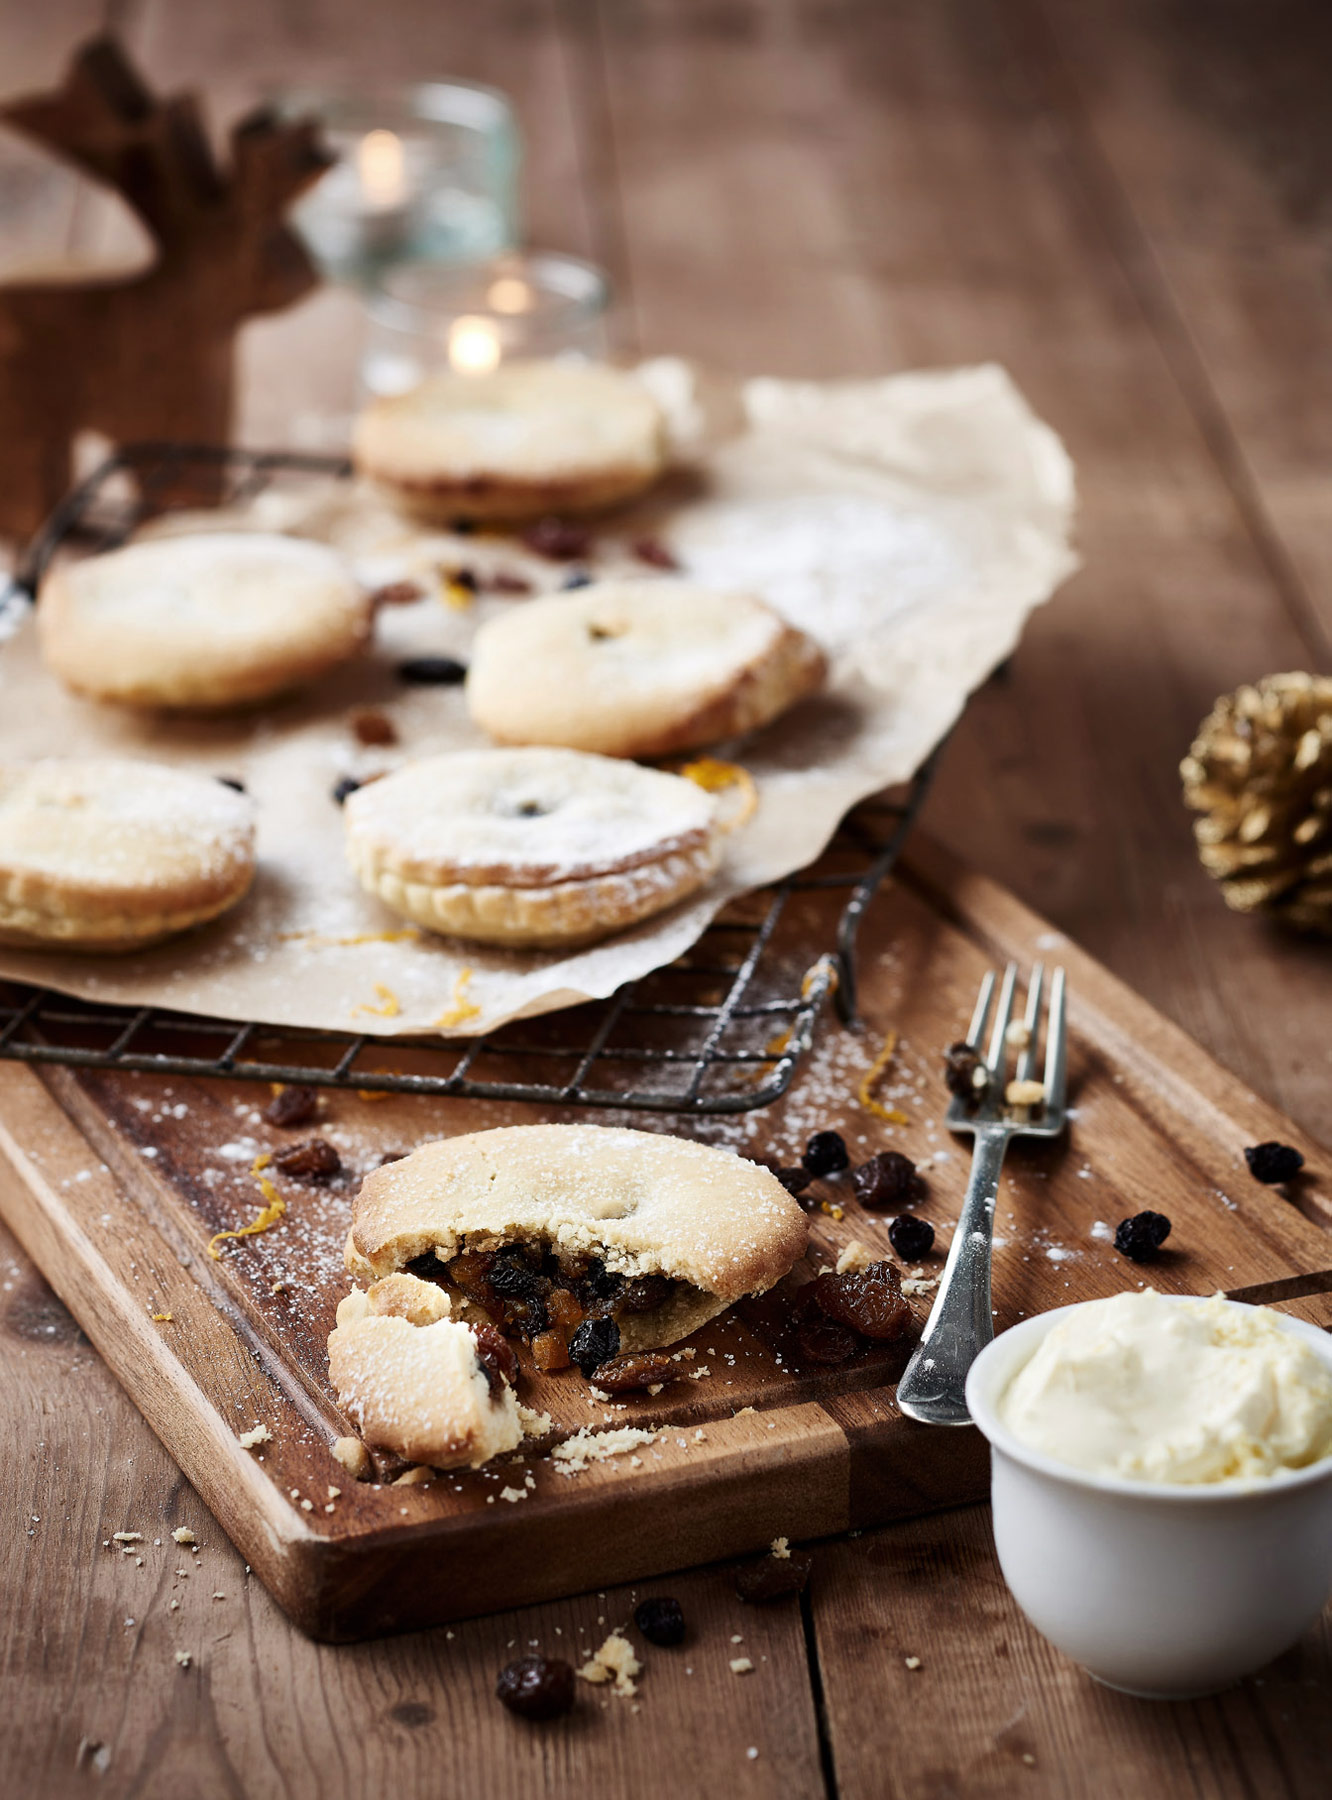 East of England Co-op mince pies